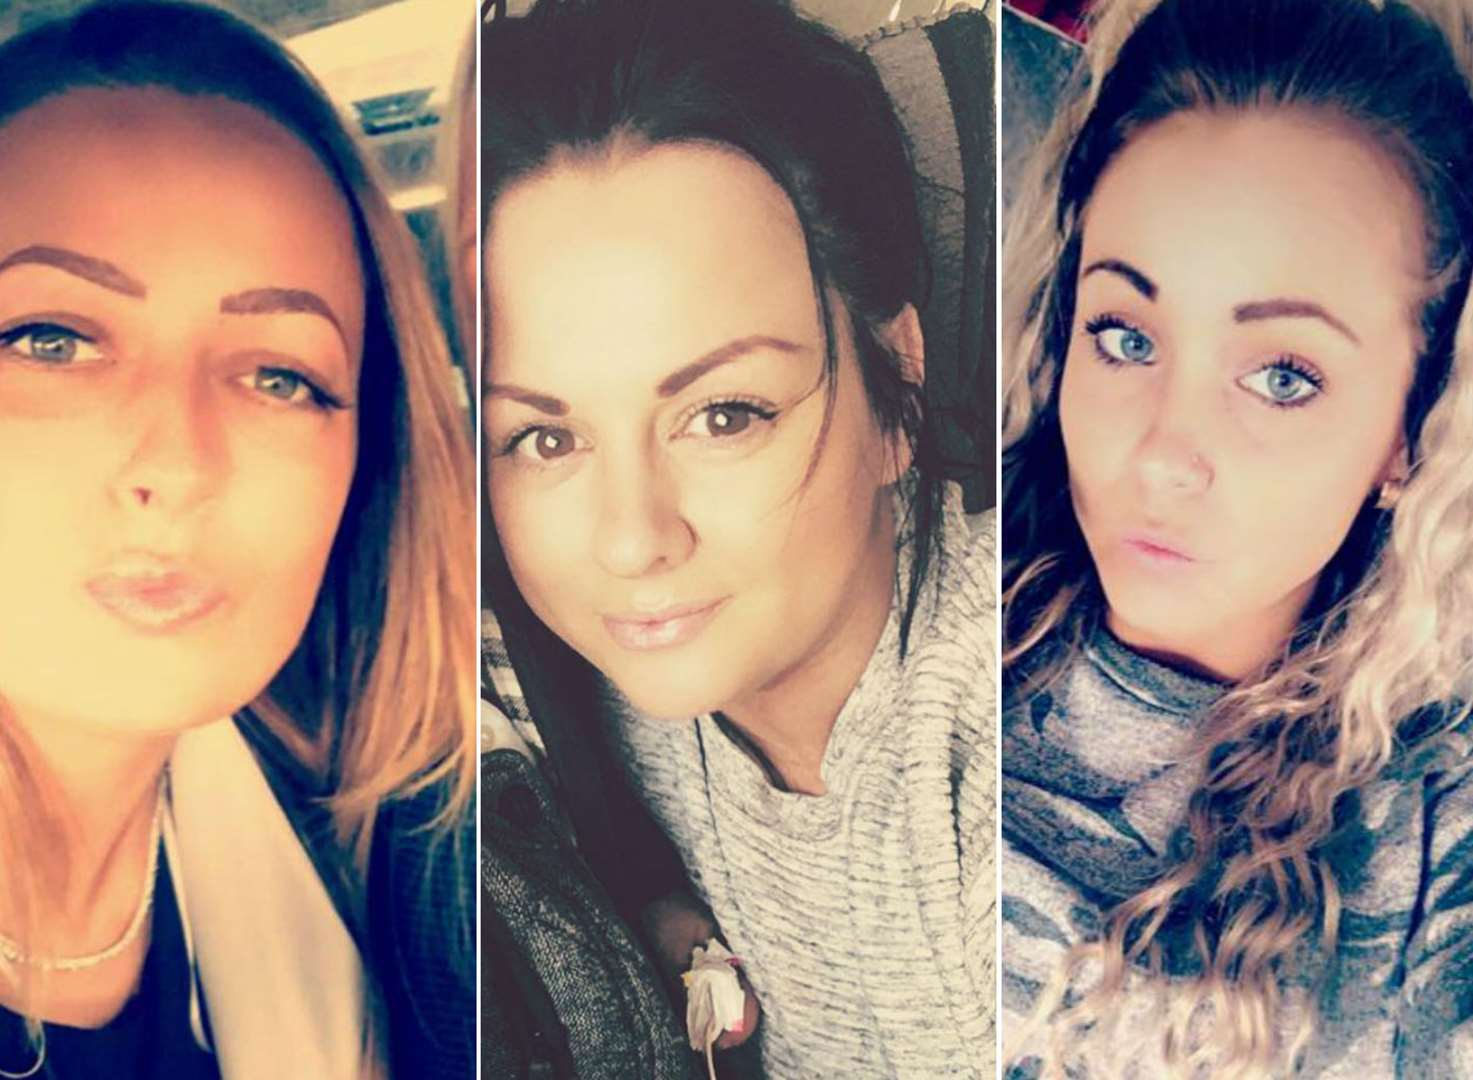 Trio of drunken mums knock girl unconscious